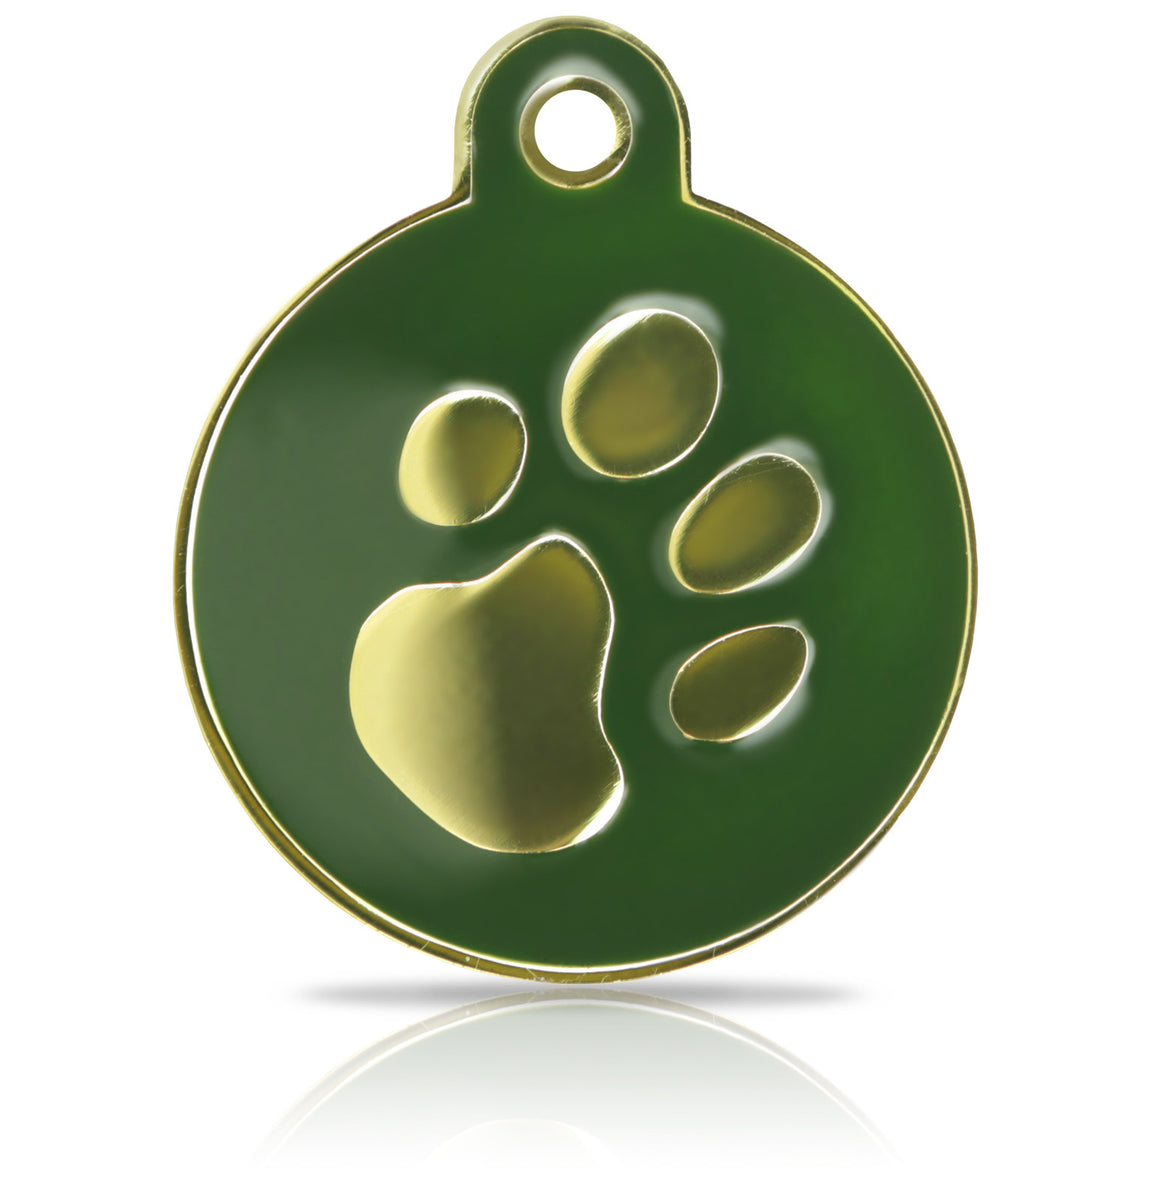 TaggIT Elegance Large Disc Green & Gold Pet Tag iMarc Tag